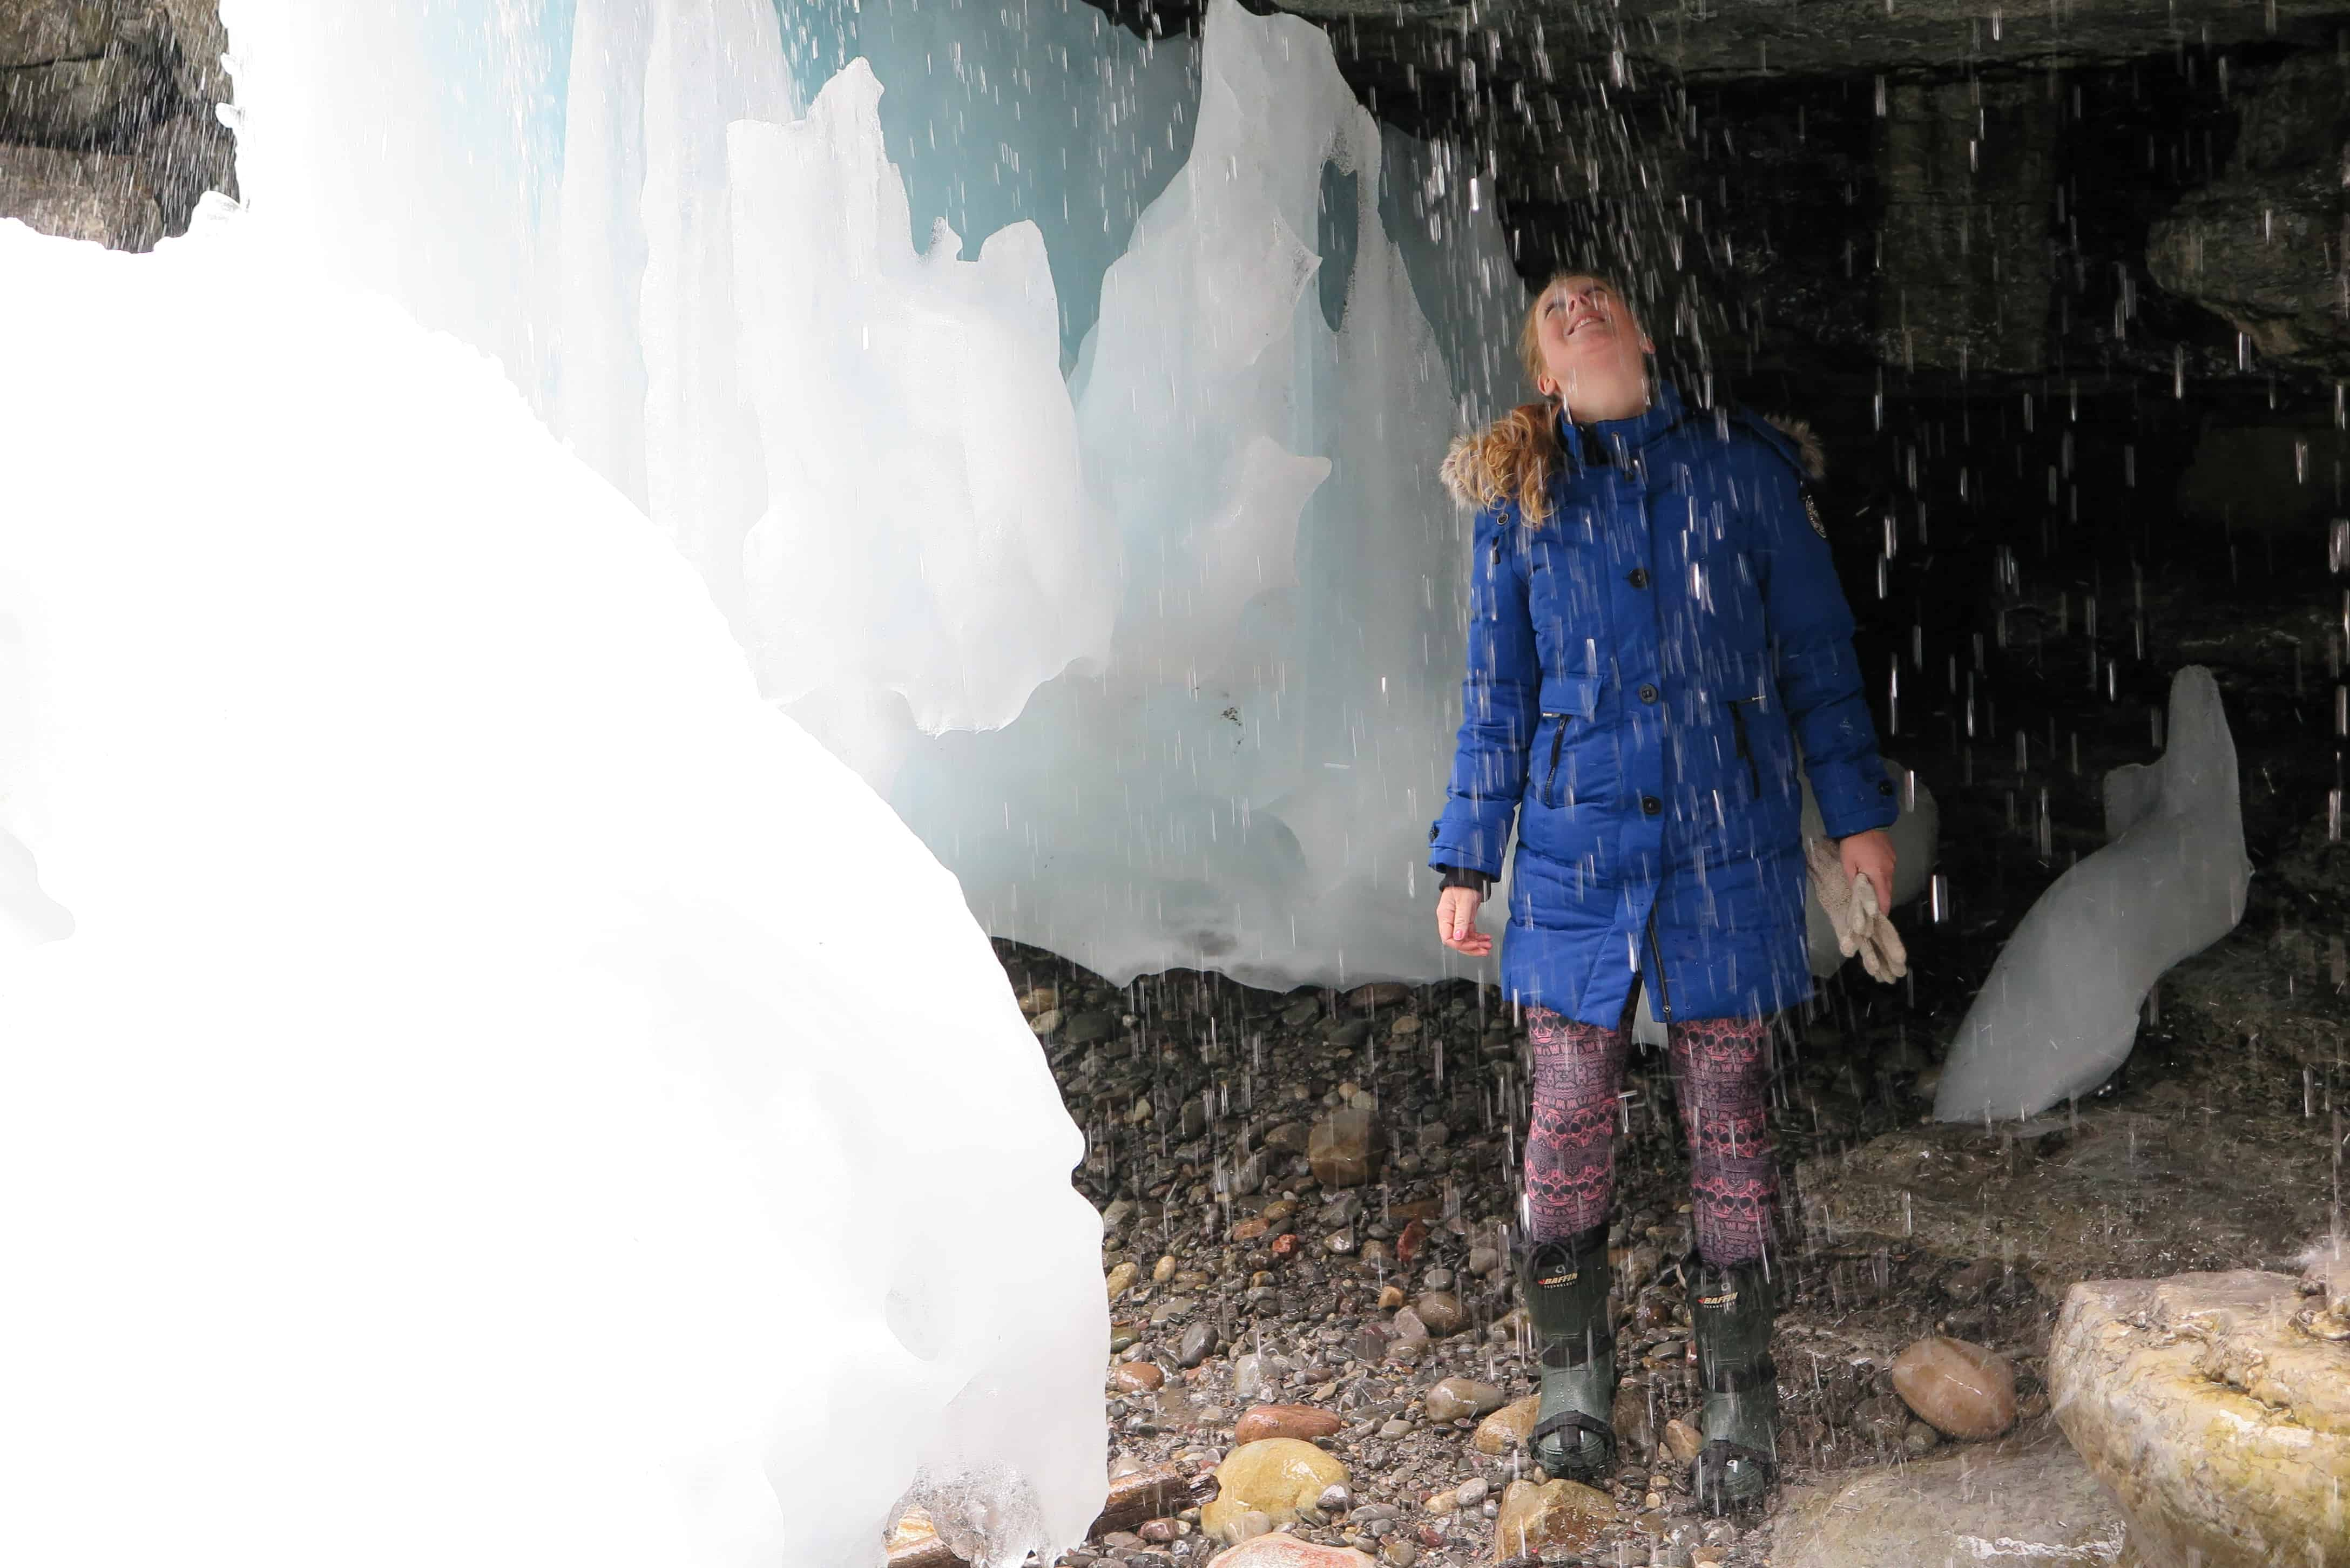 Candice in the ice canyon